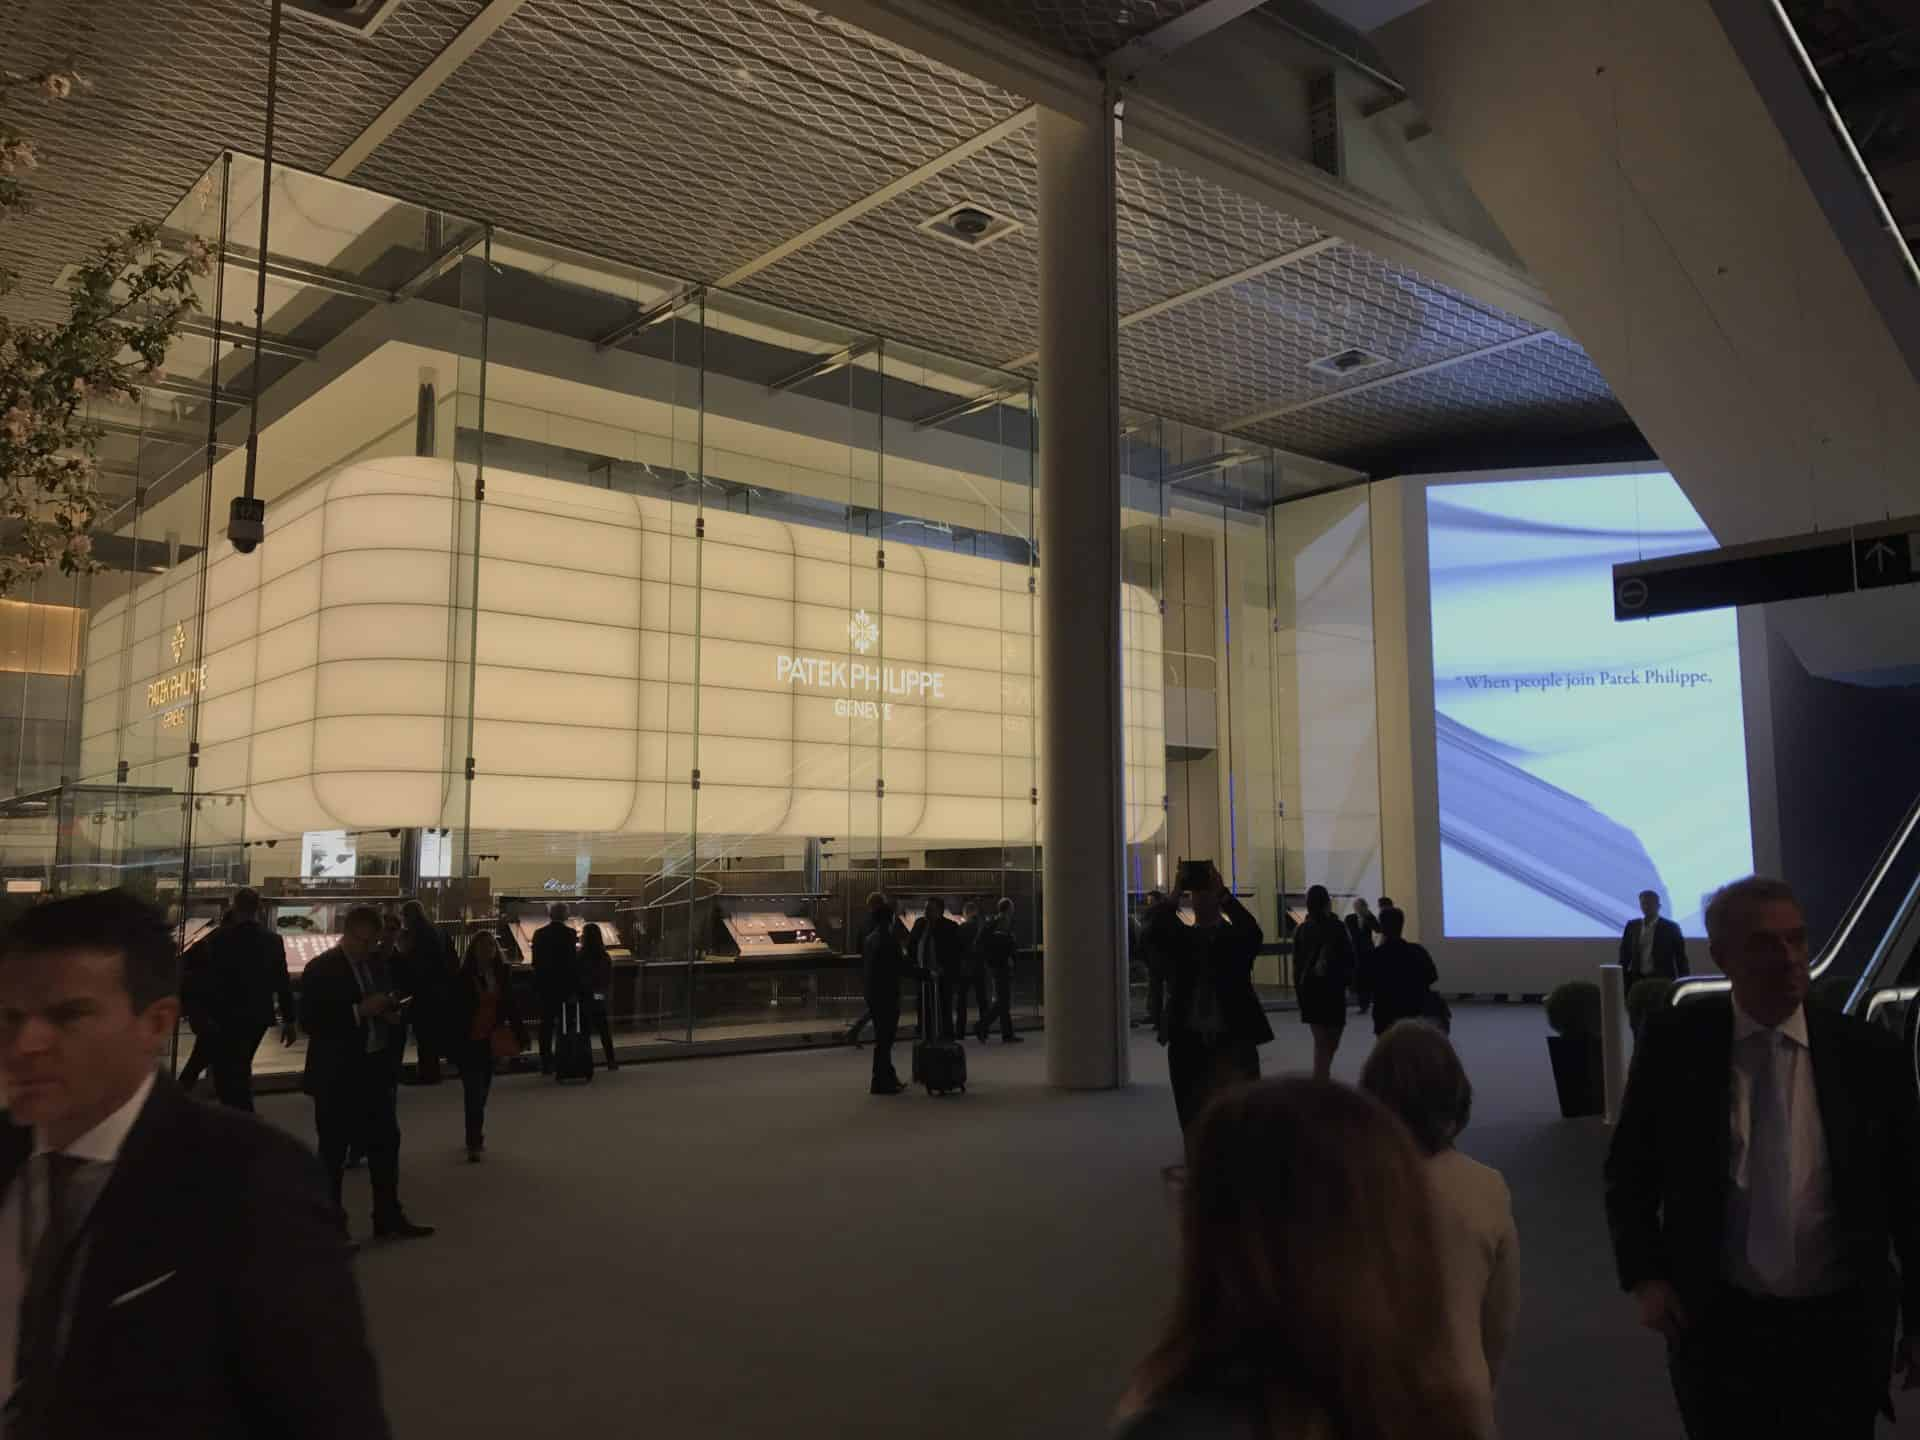 Glaspalast: der Baselworld-Messestand von Patek Philippe